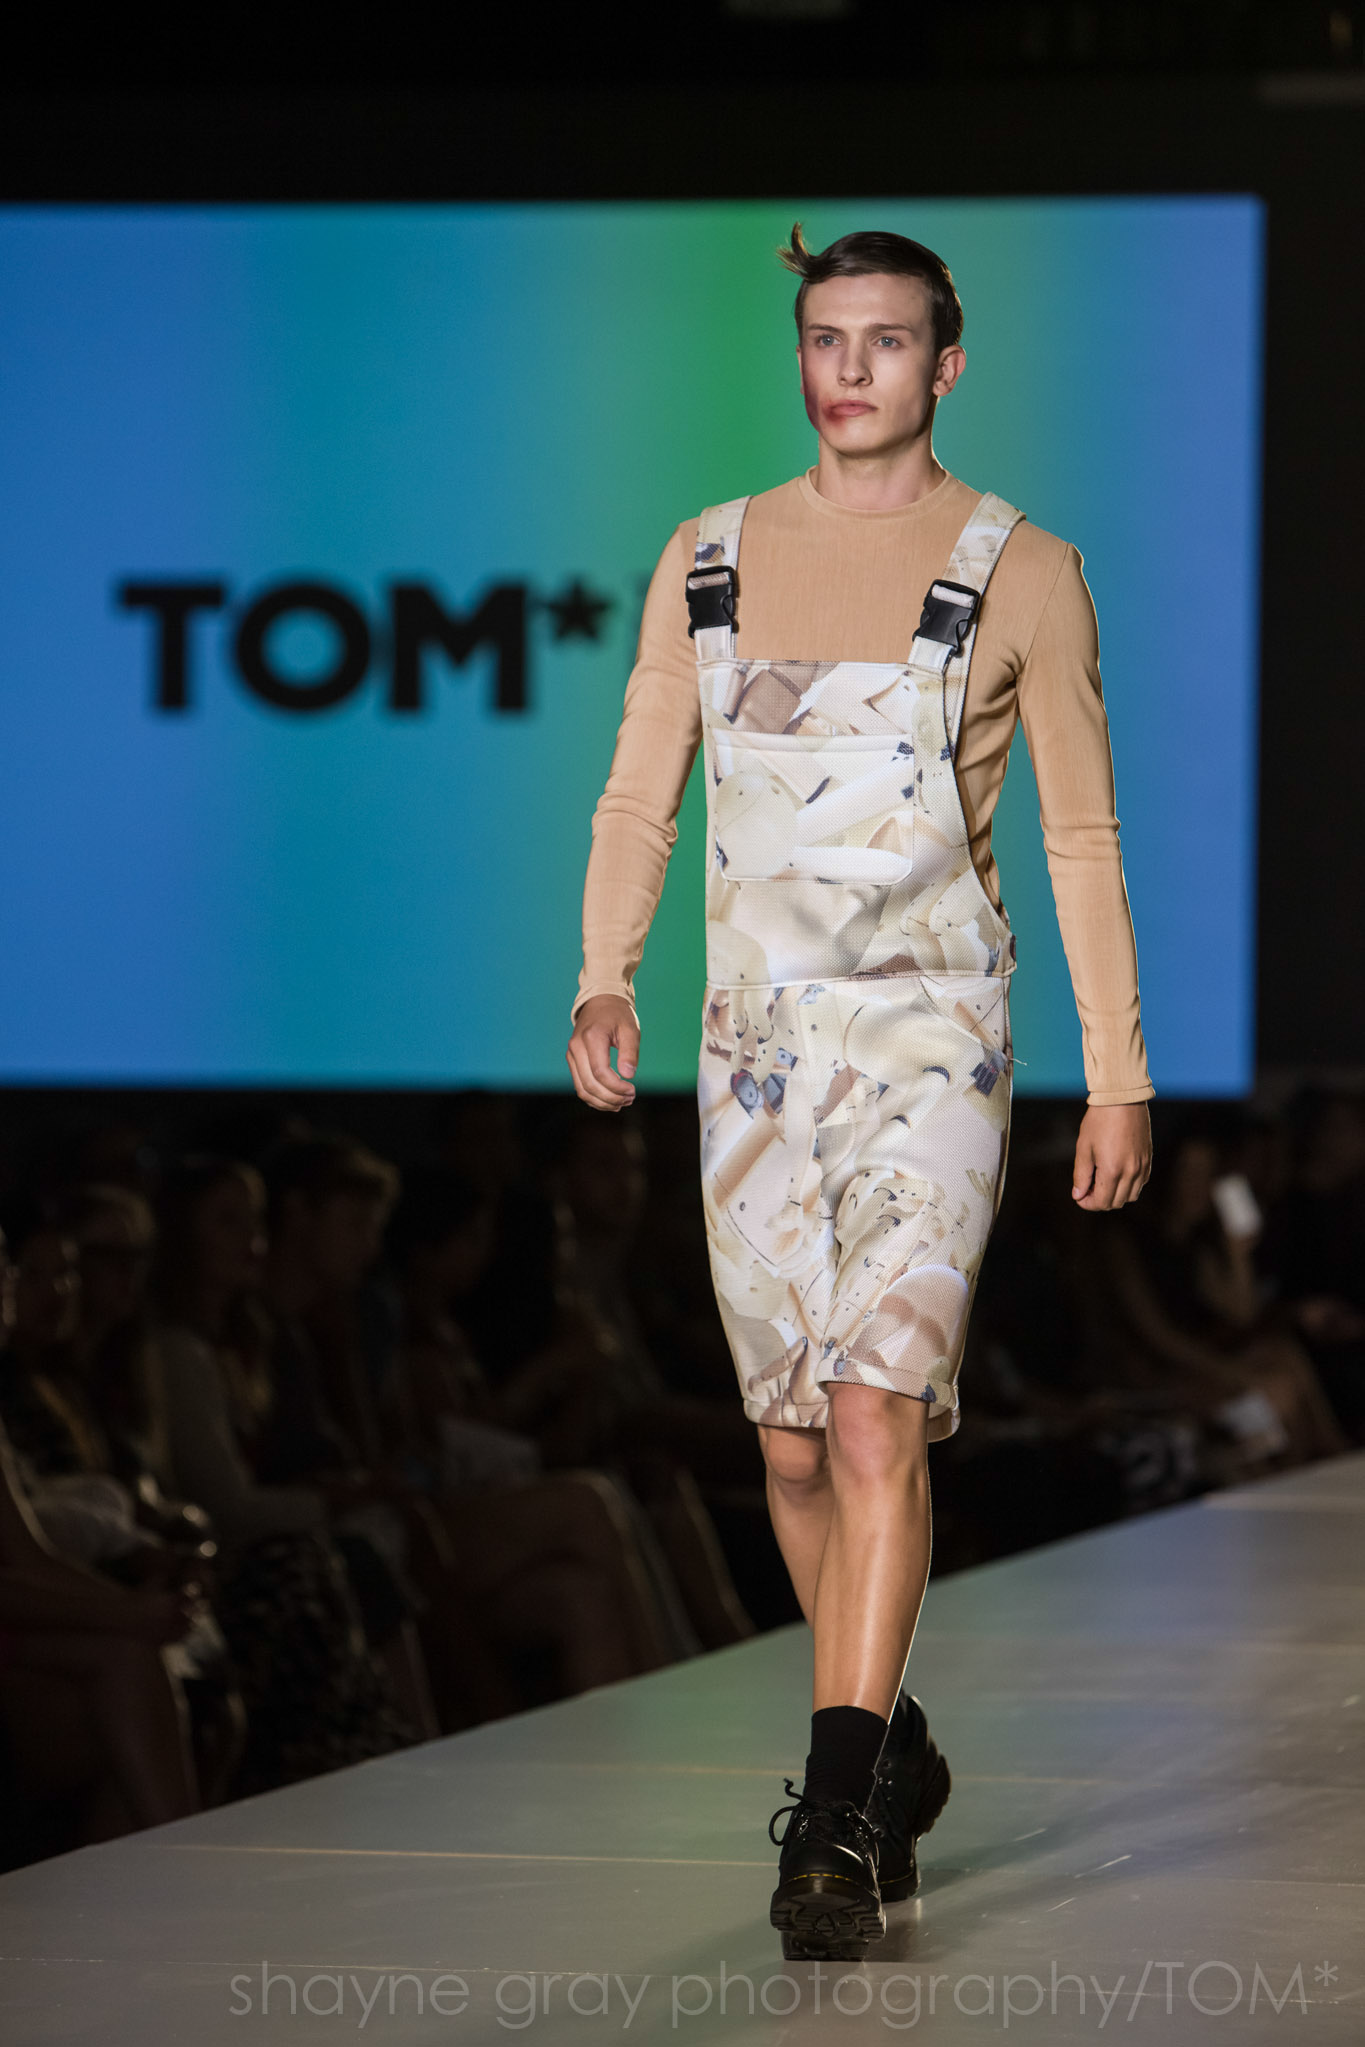 Shayne-Gray-Toronto-men's-fashion_week-TOM-lafaille-7636.jpg